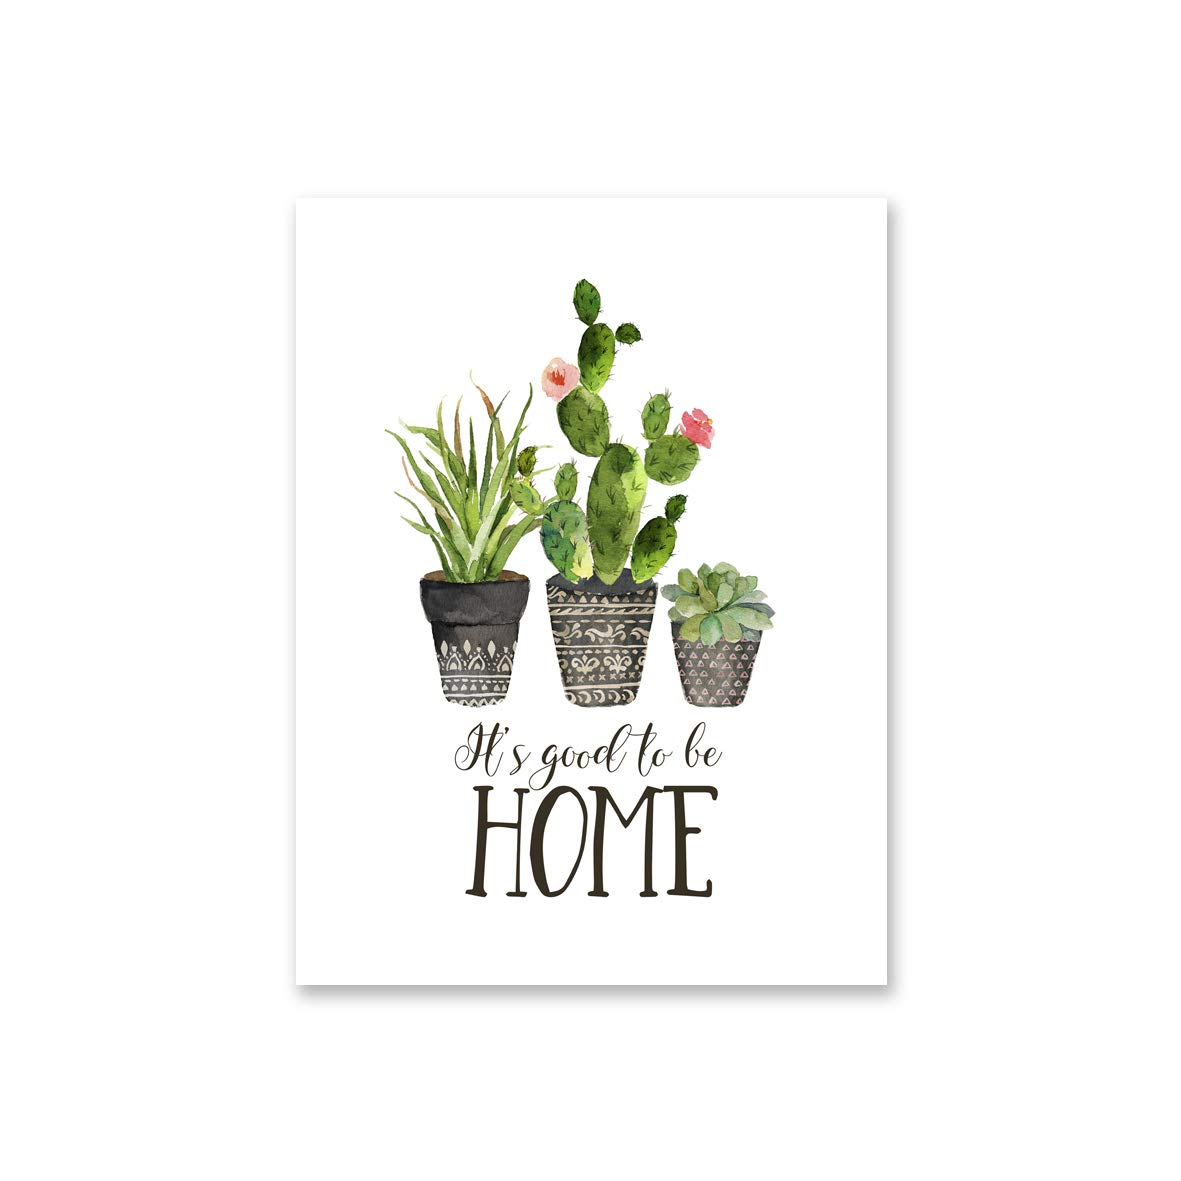 Premium Printing with Canon Japan Ink TUNAstudio Good to Be Home Unframed   Designed Canvas Prints 12x16 inch Sunflowers, Home, Motivating Quote Set of 3